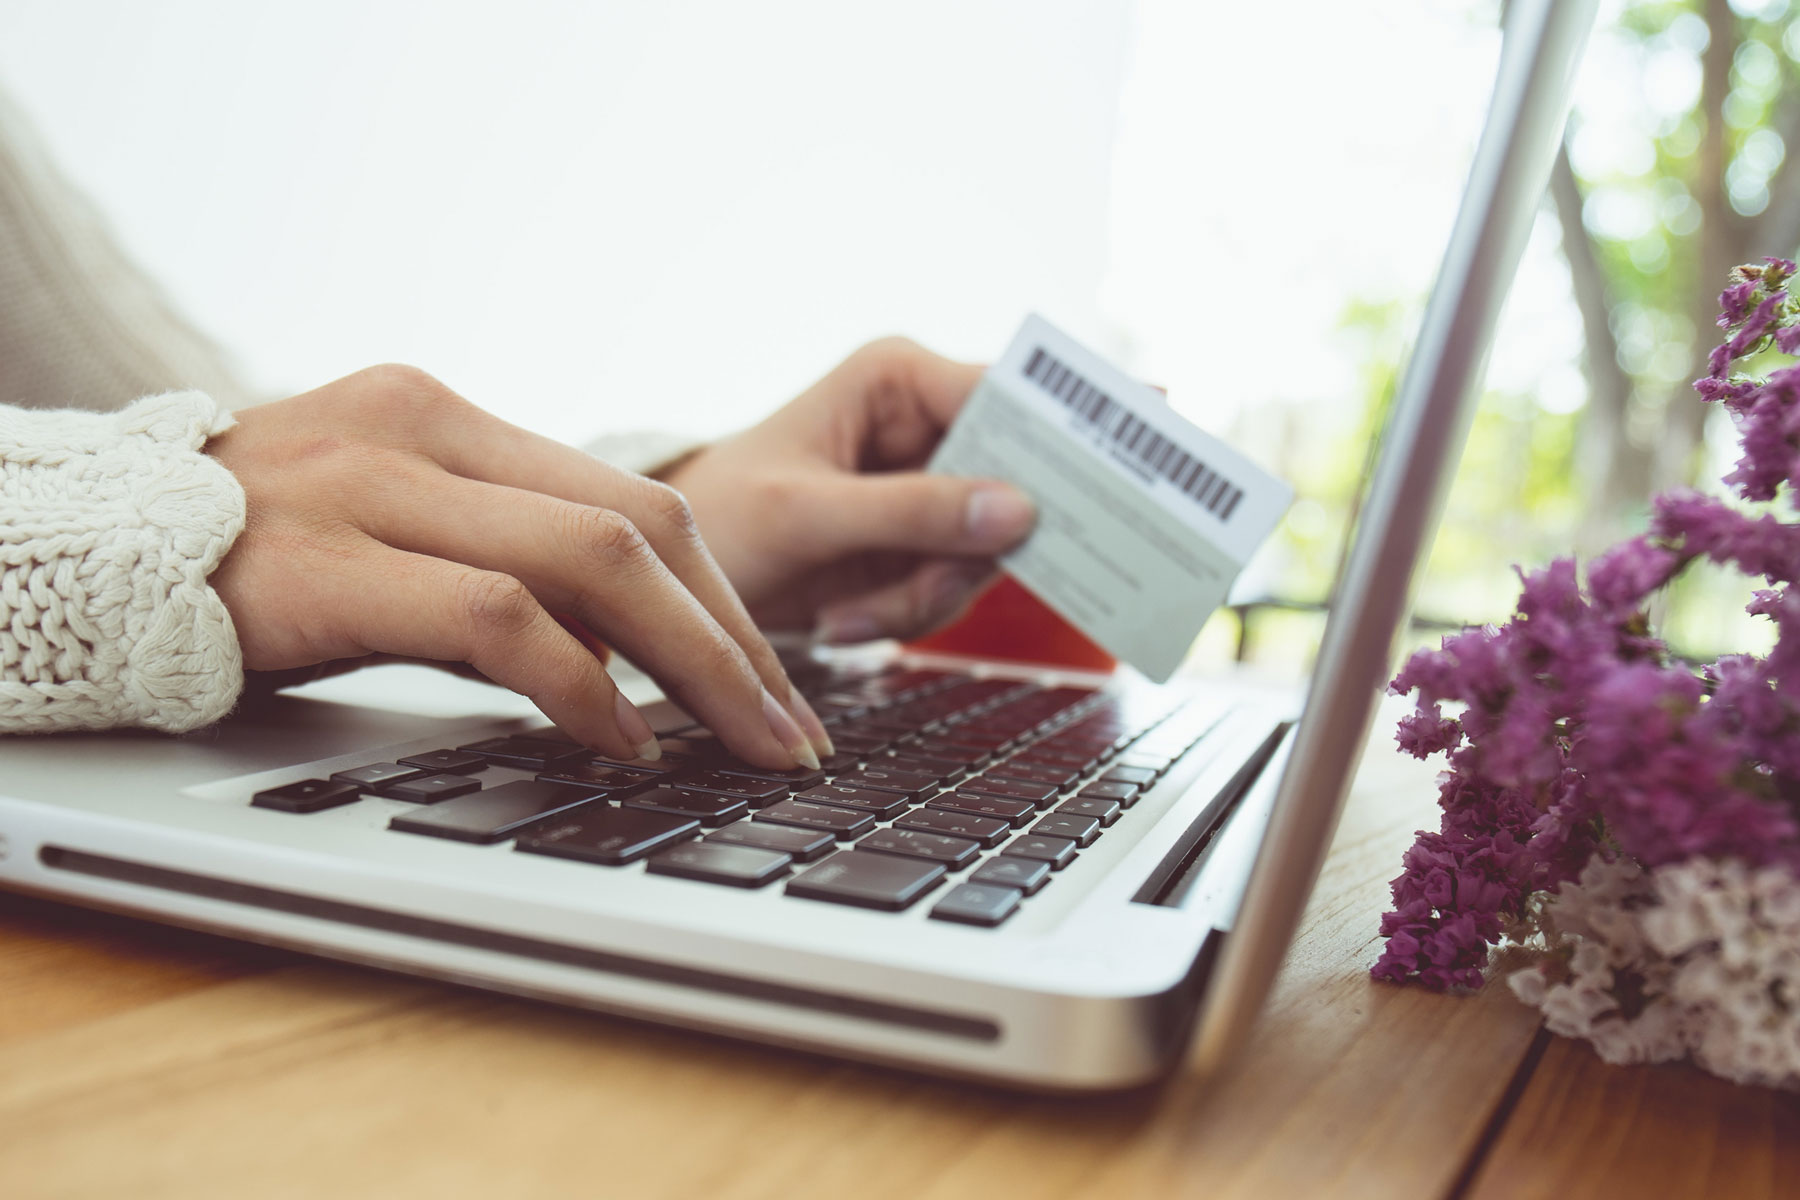 Woman shopping online using UncommonPerks from UncommonGoods